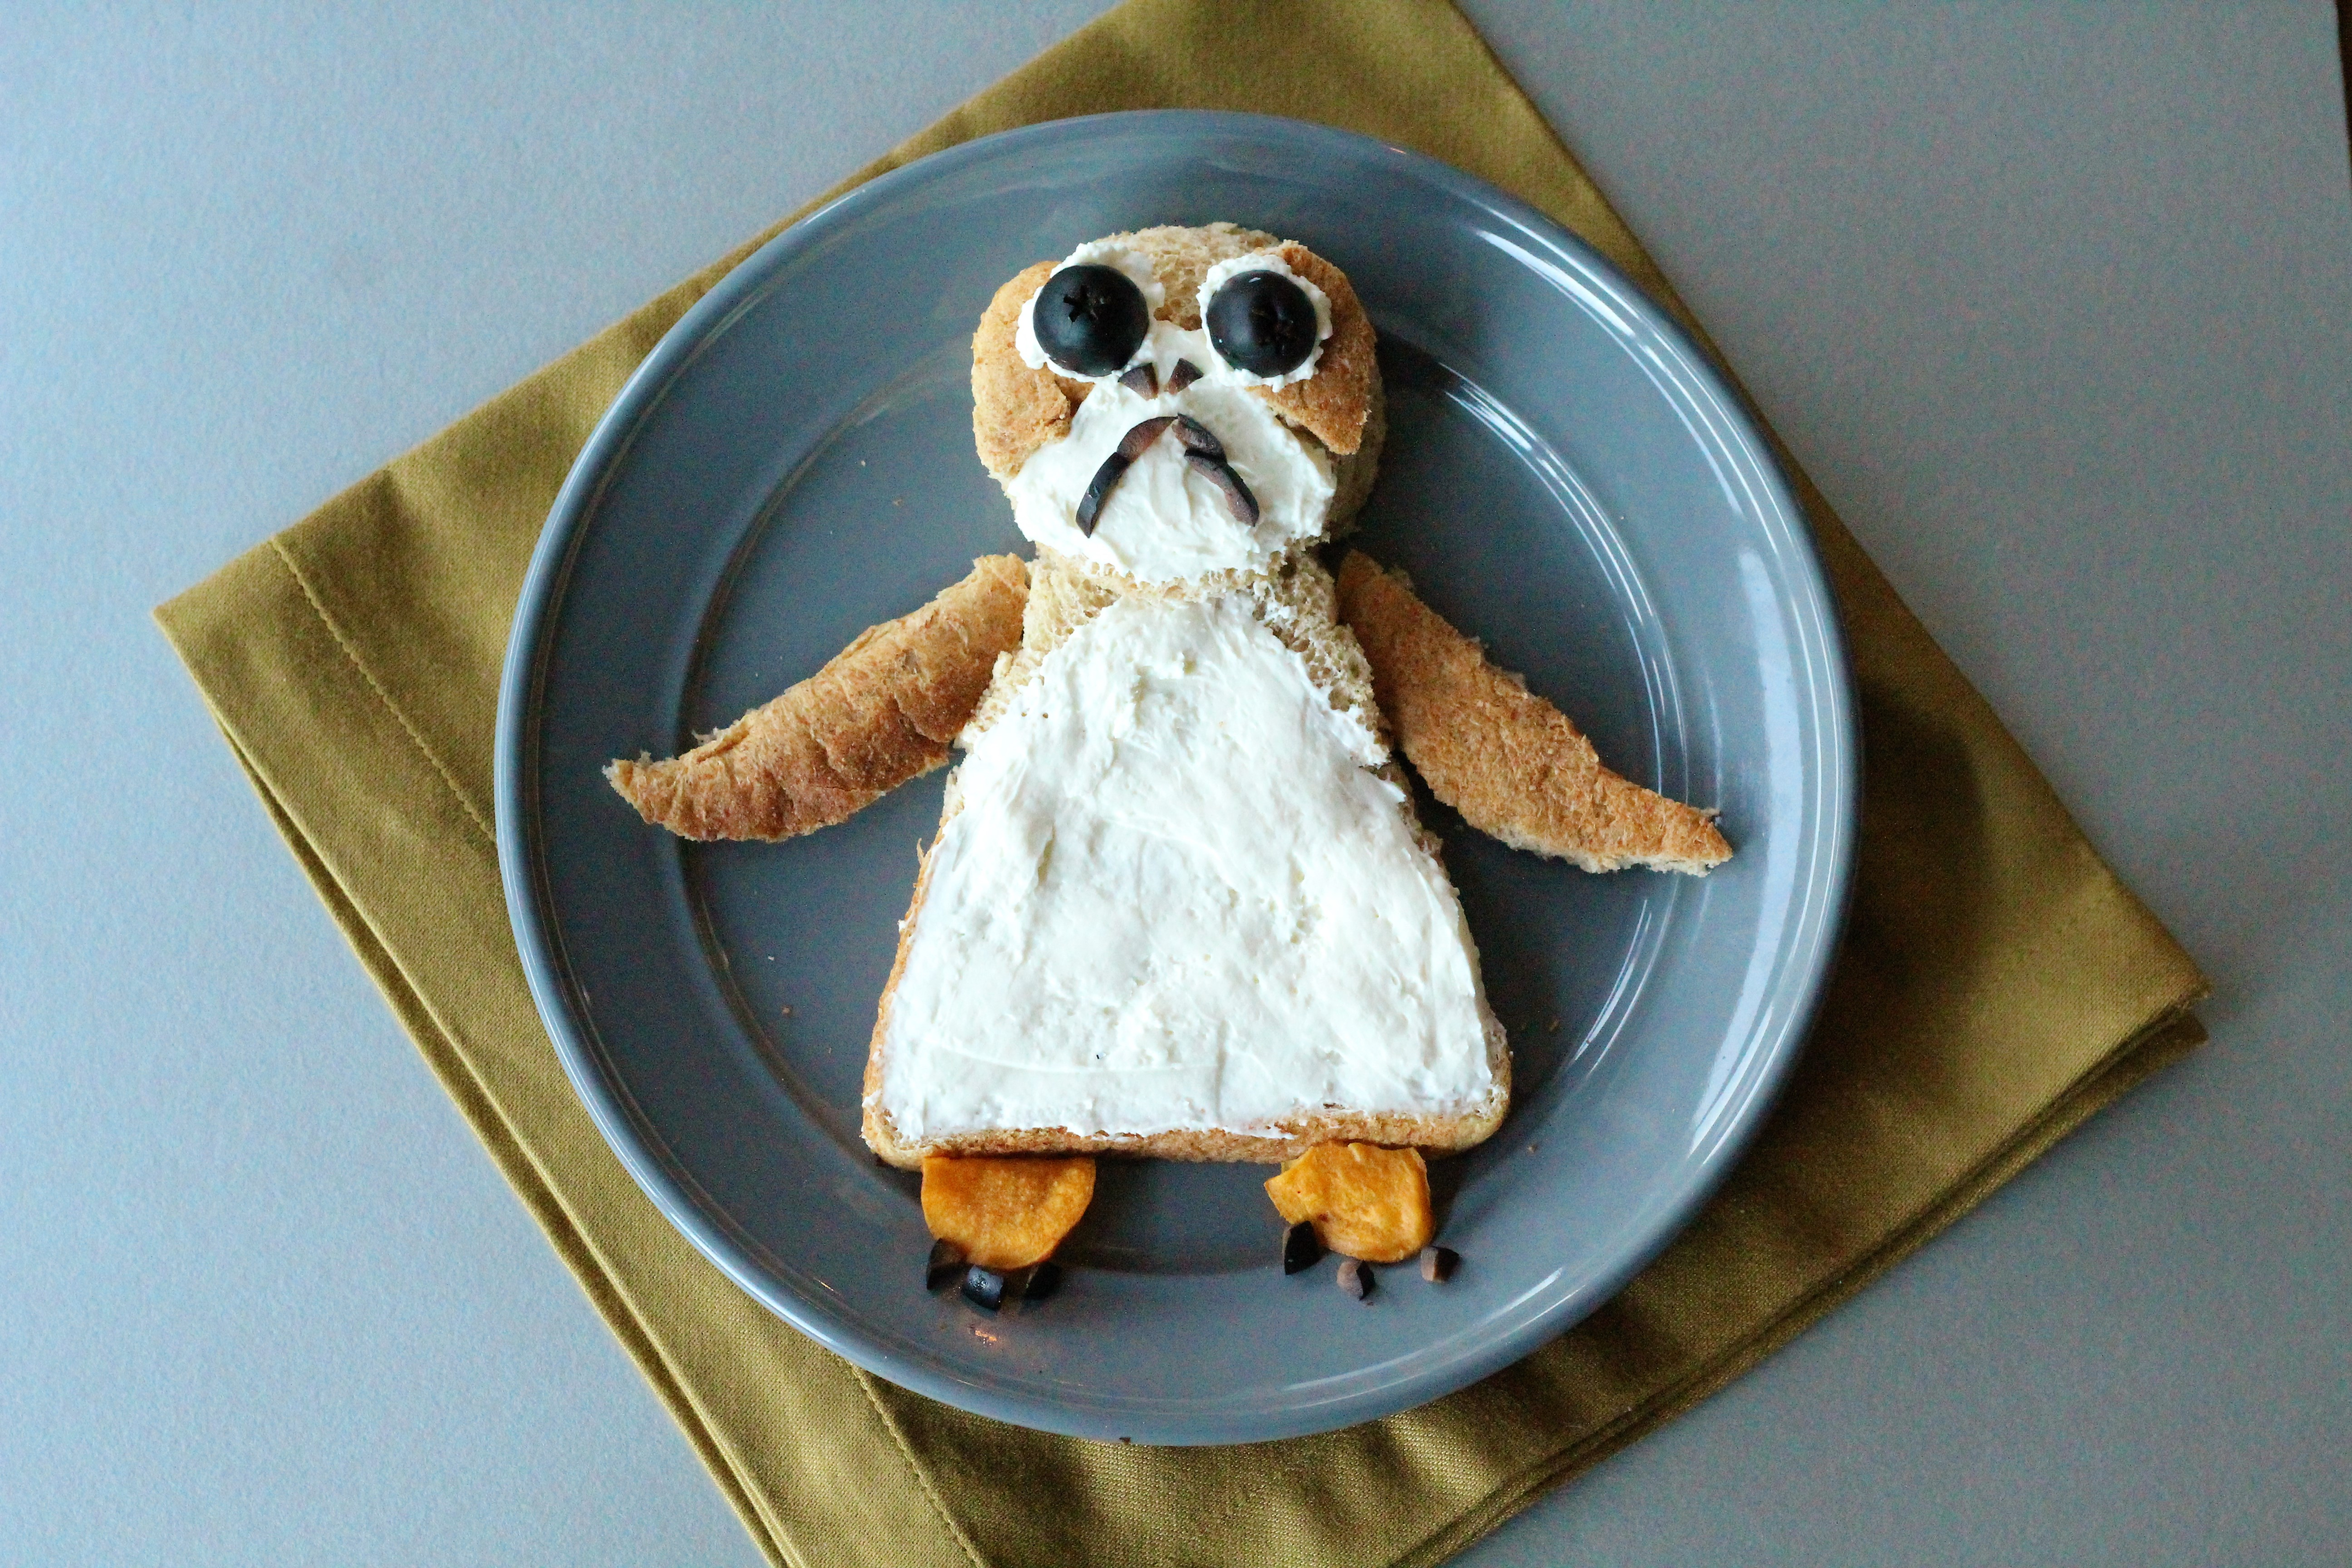 Star Wars Food Art Porgwich The Healthy Mouse